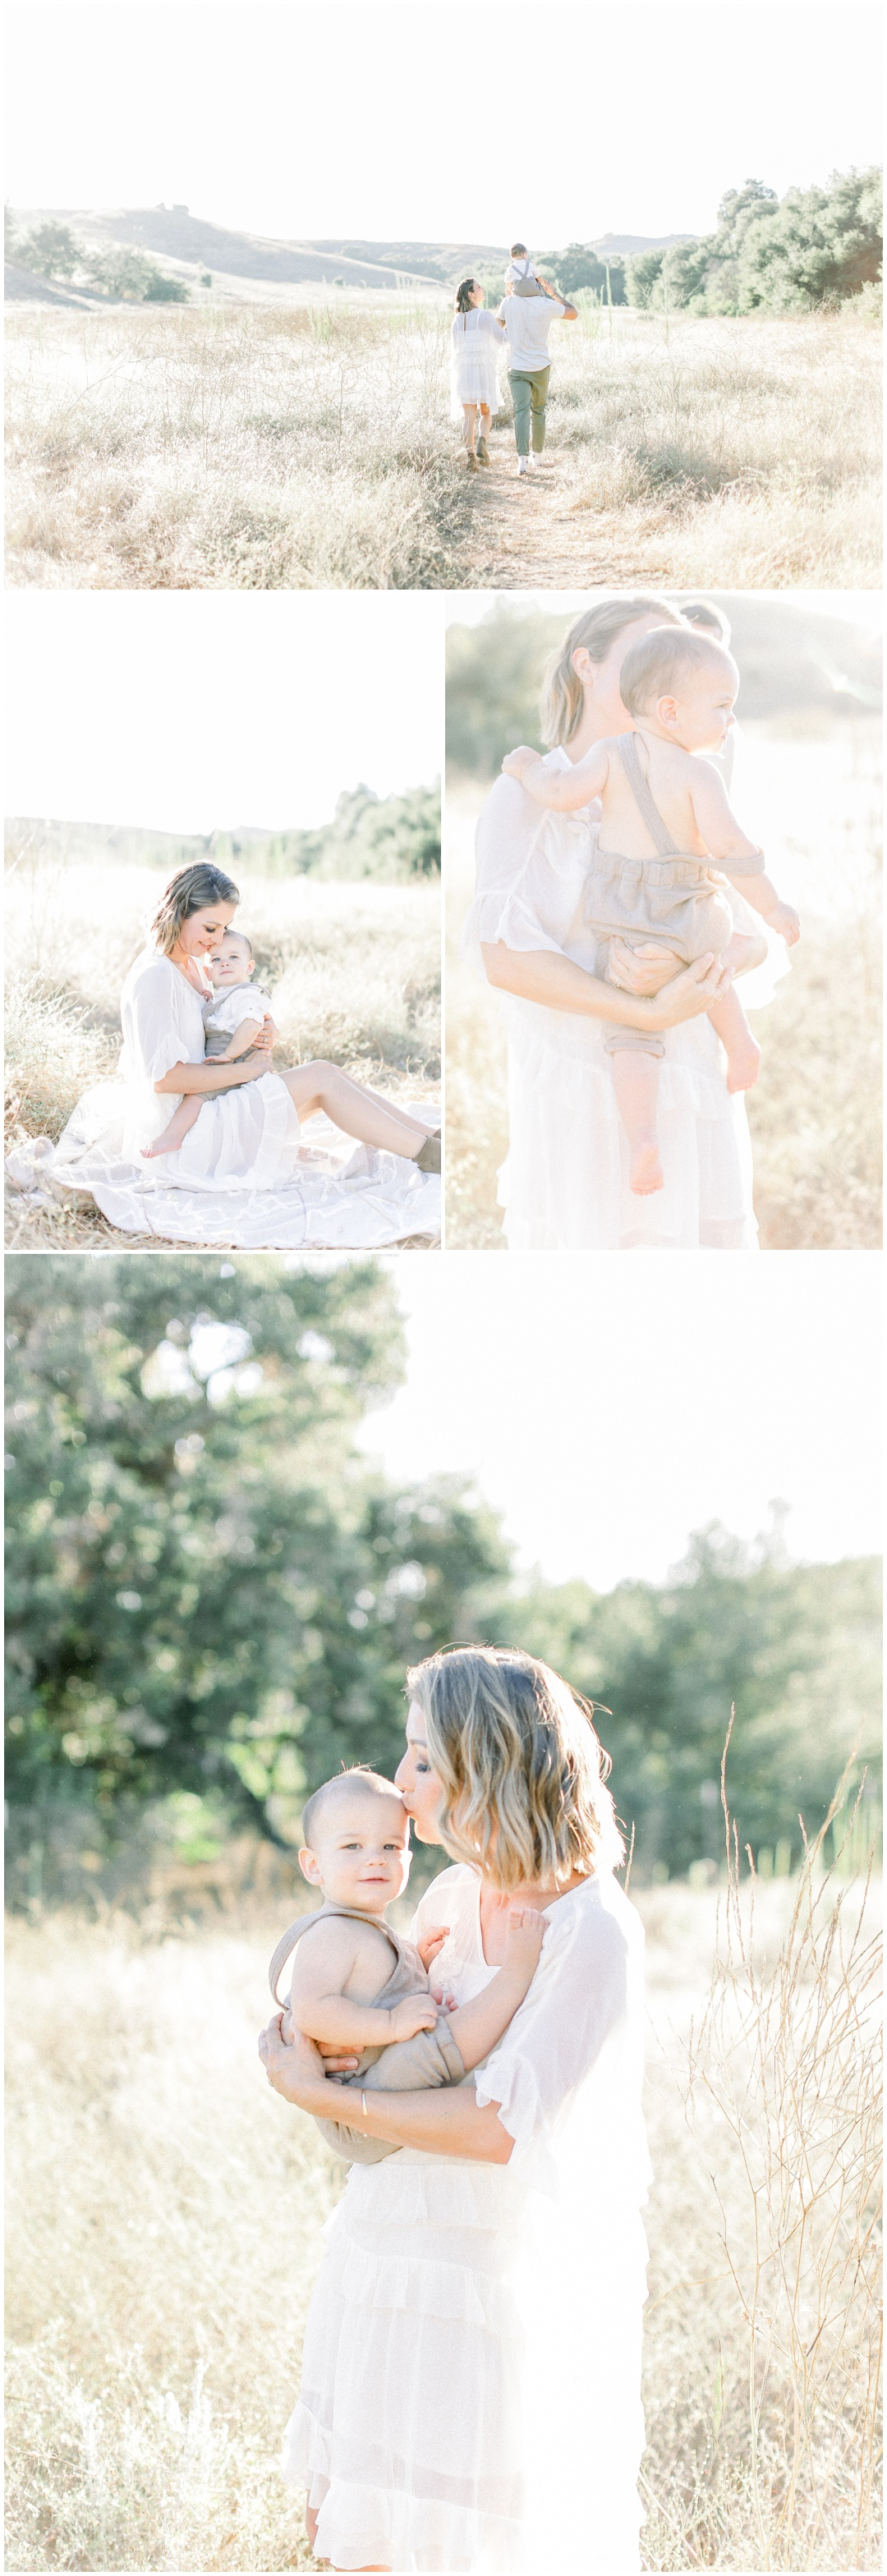 Newport_Beach_Family_Session_Orange_County_Family_Photographer_Thomas_Riley_Wilderness_Park_Carrie_Stotts_Sean_Stotts__4321.jpg